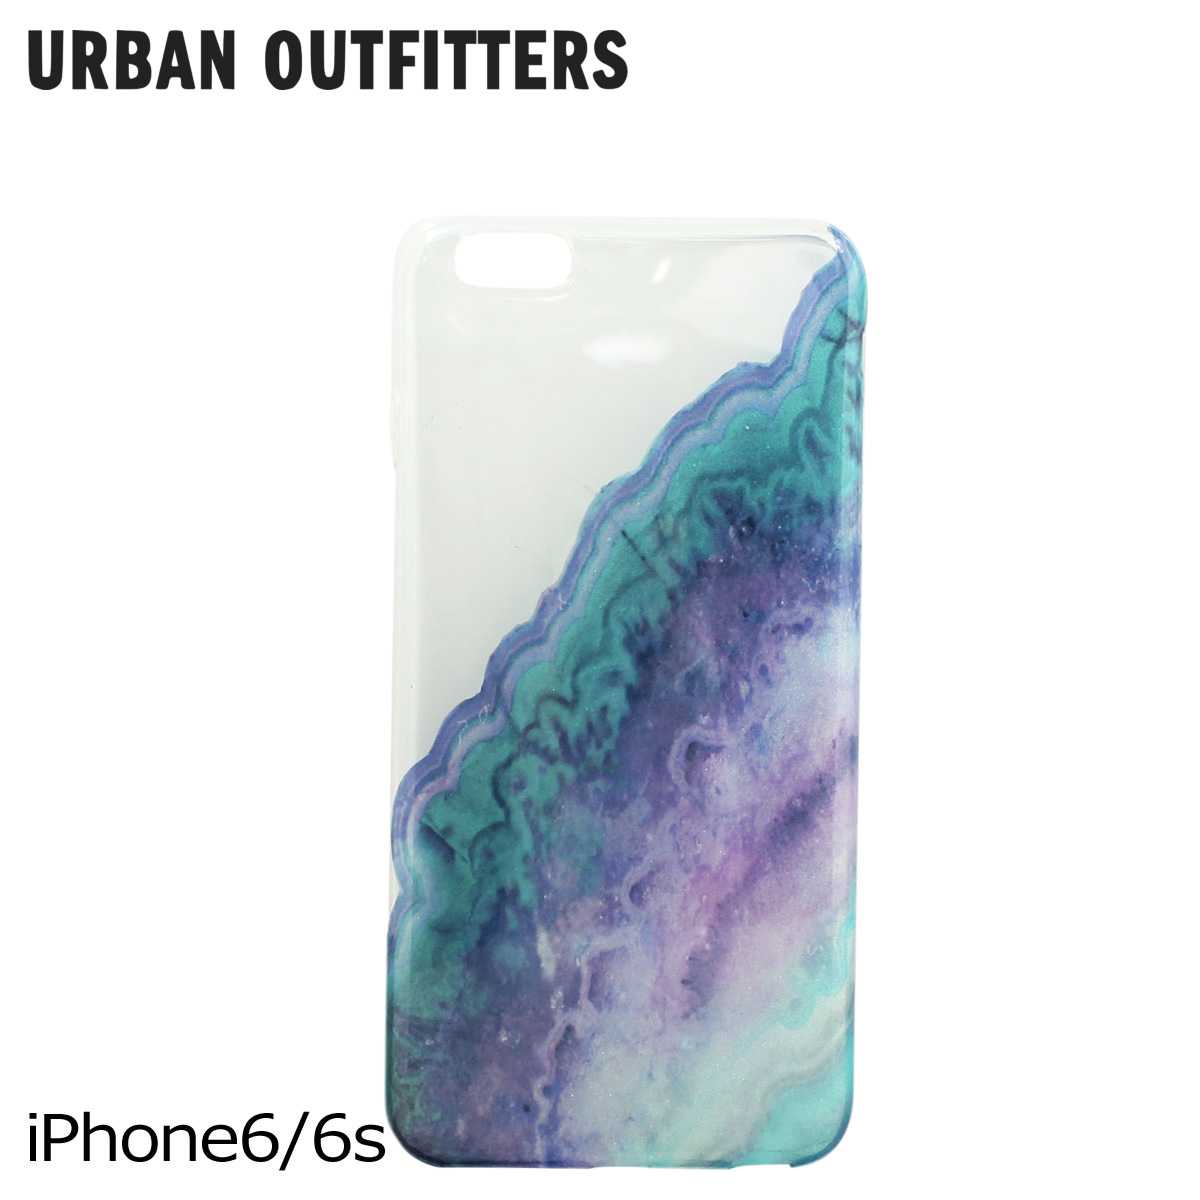 Allsports Urban Outfitters Urban Outfitters Iphone6 Plus Case